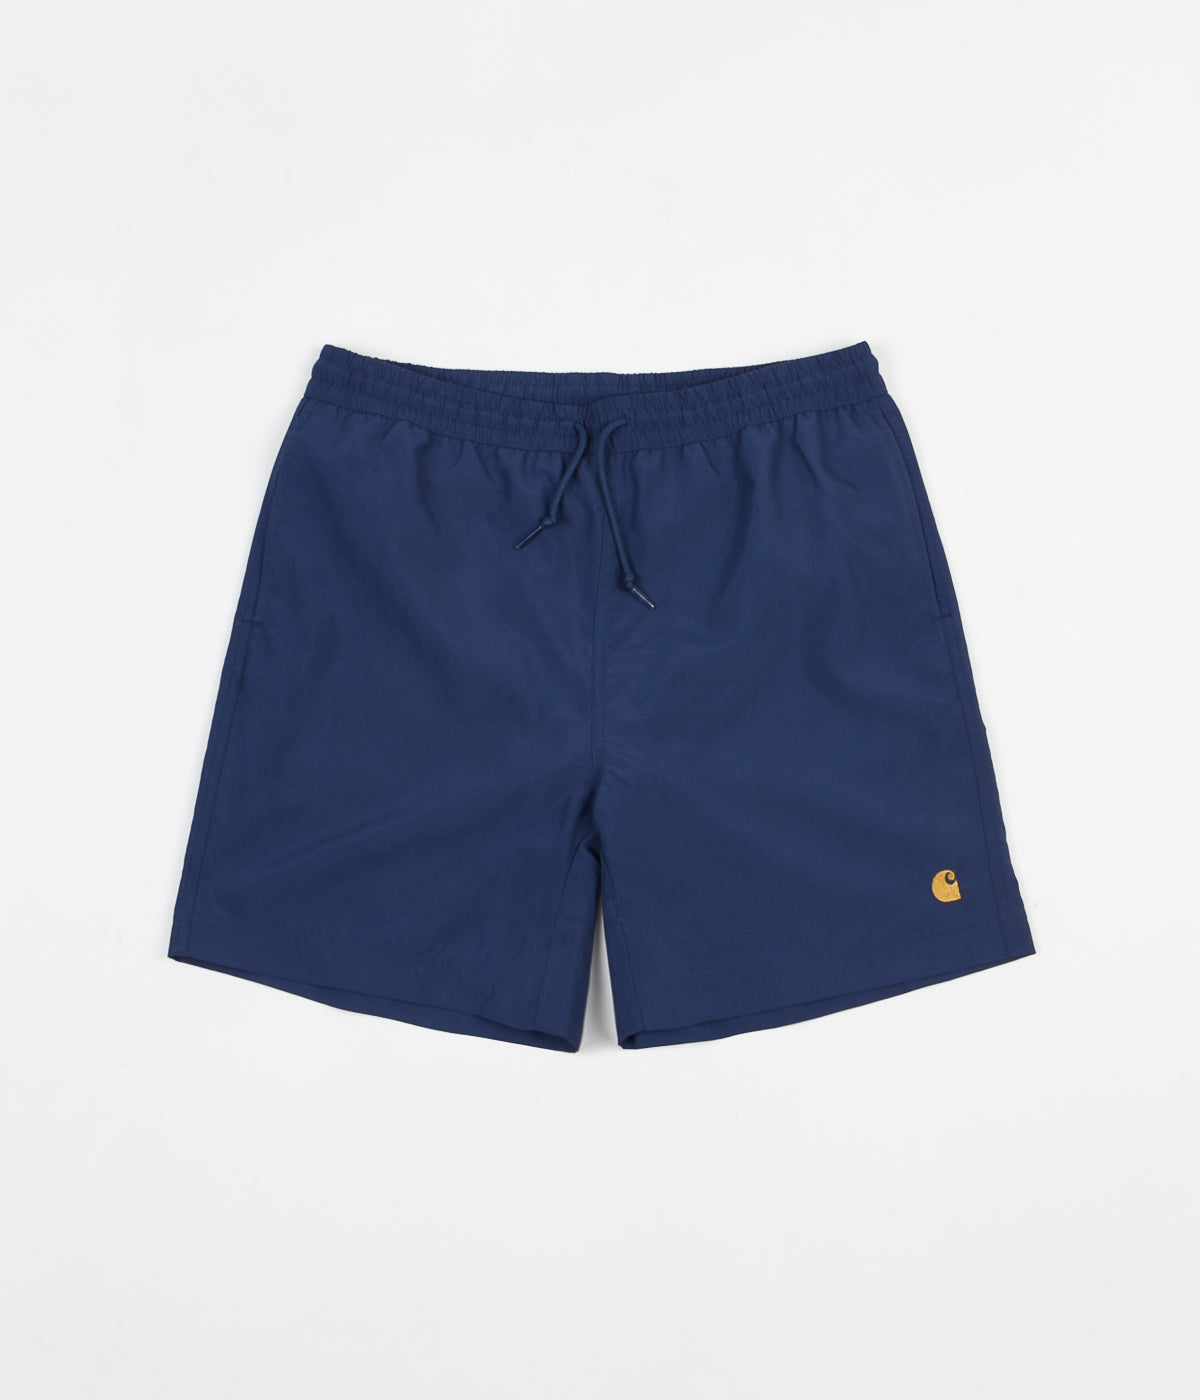 a01fb5185c Carhartt Chase Swim Trunks - Metro Blue / Gold | Flatspot